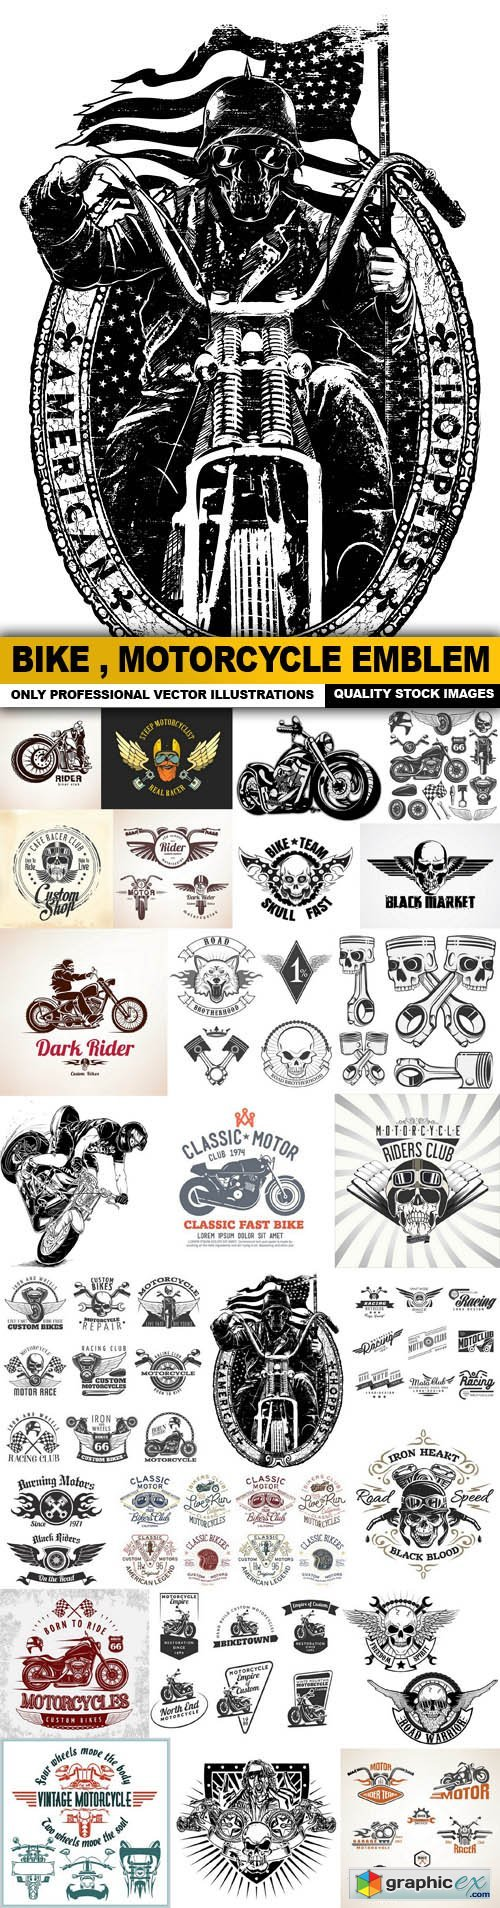 Bike , Motorcycle Emblem Collection